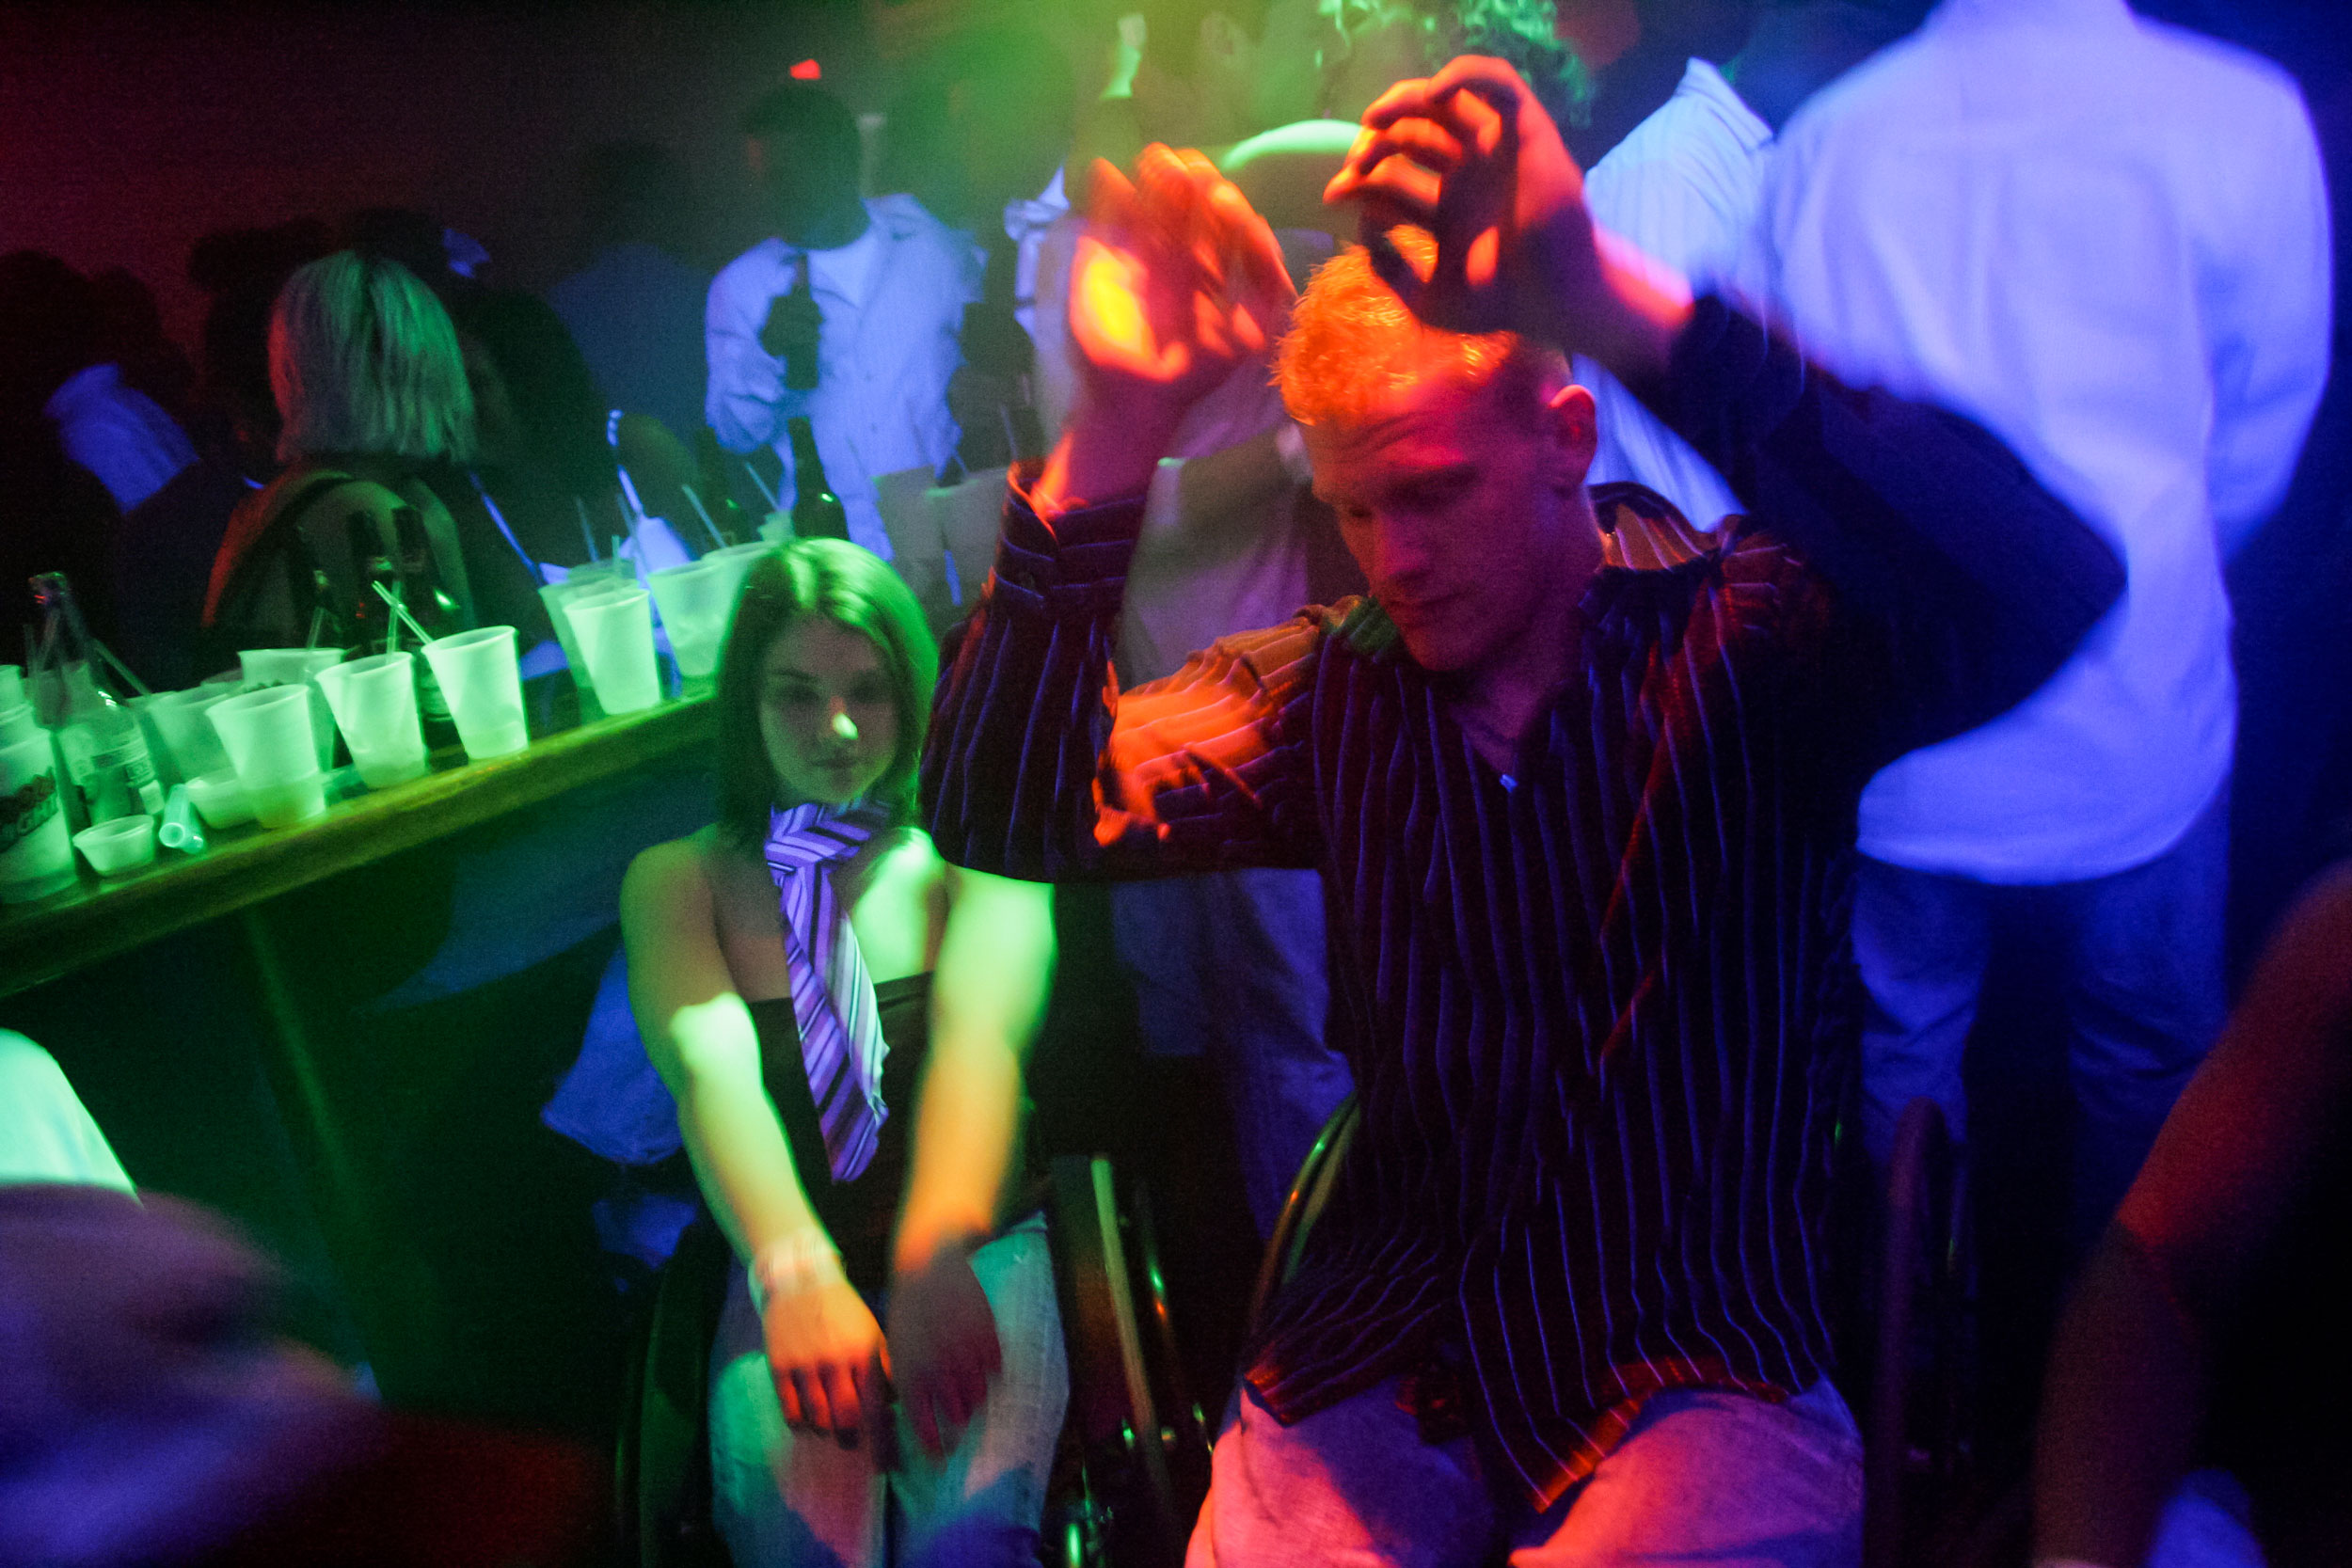 Matt Buchi dances with women's track athlete Jessica Galli at Joe's Brewery in Champaign, Ill., for a night out to celebrate his 21st birthday. Despite the difficulty of getting into crowded bars, they still go.